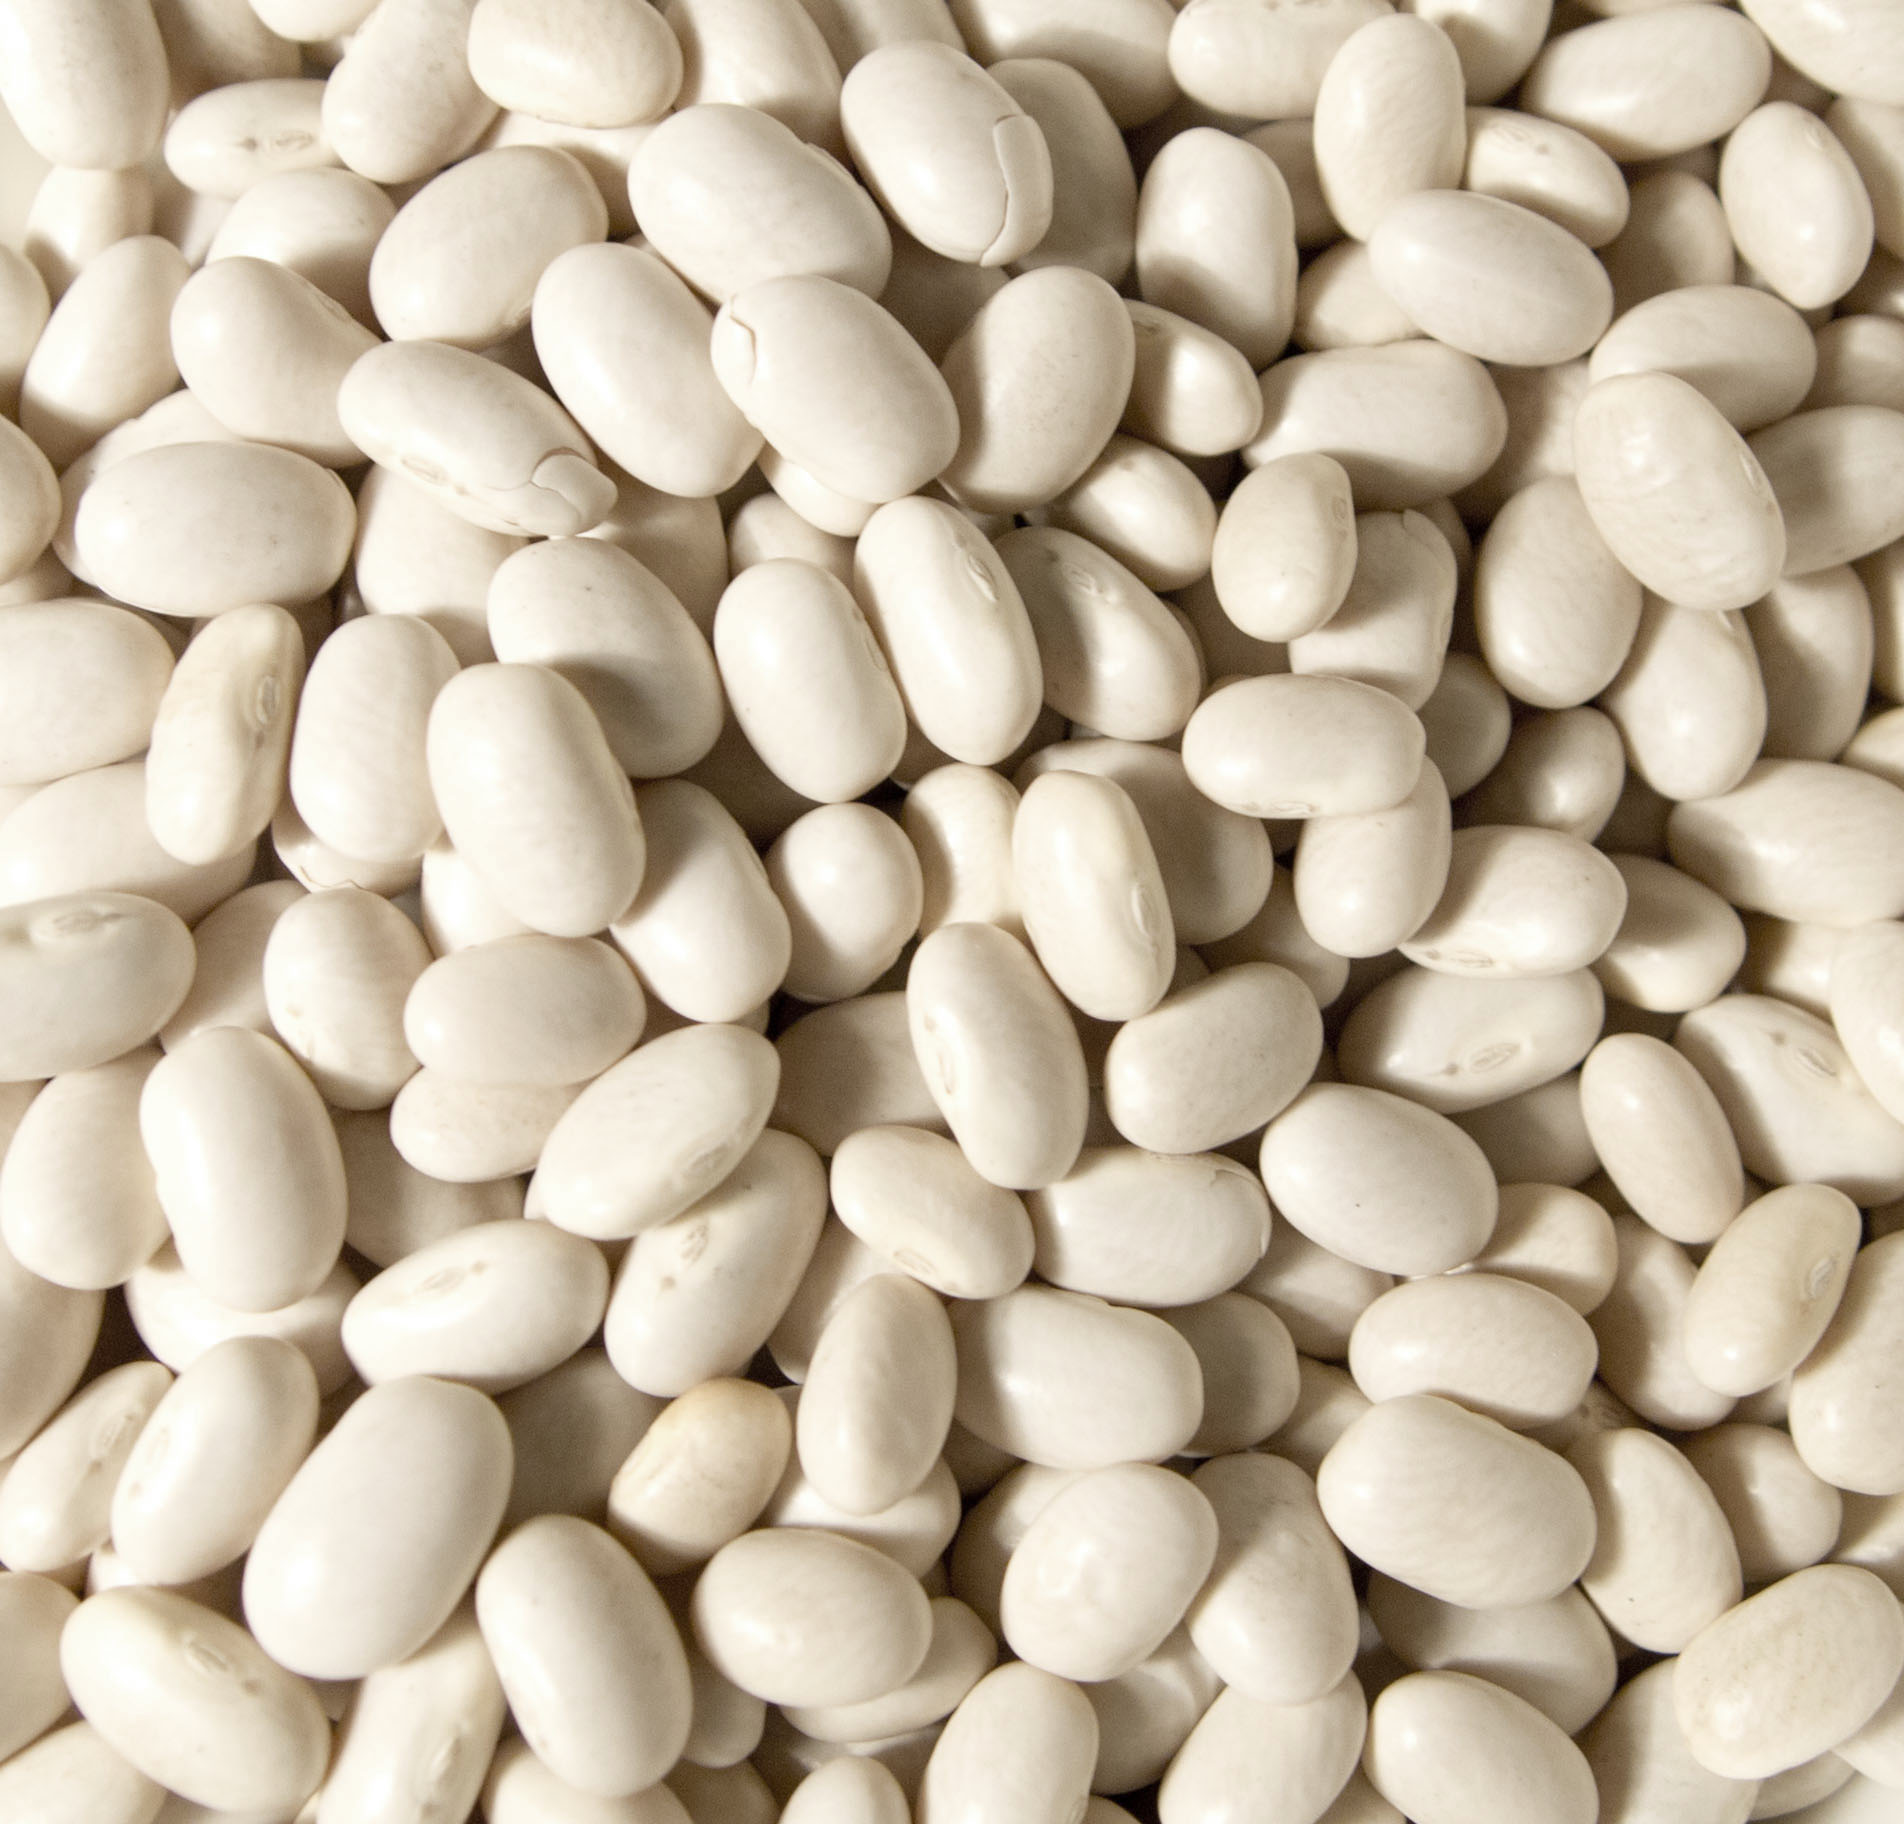 Https Commons Wikimedia Org Wiki File White Beans2 Jpg